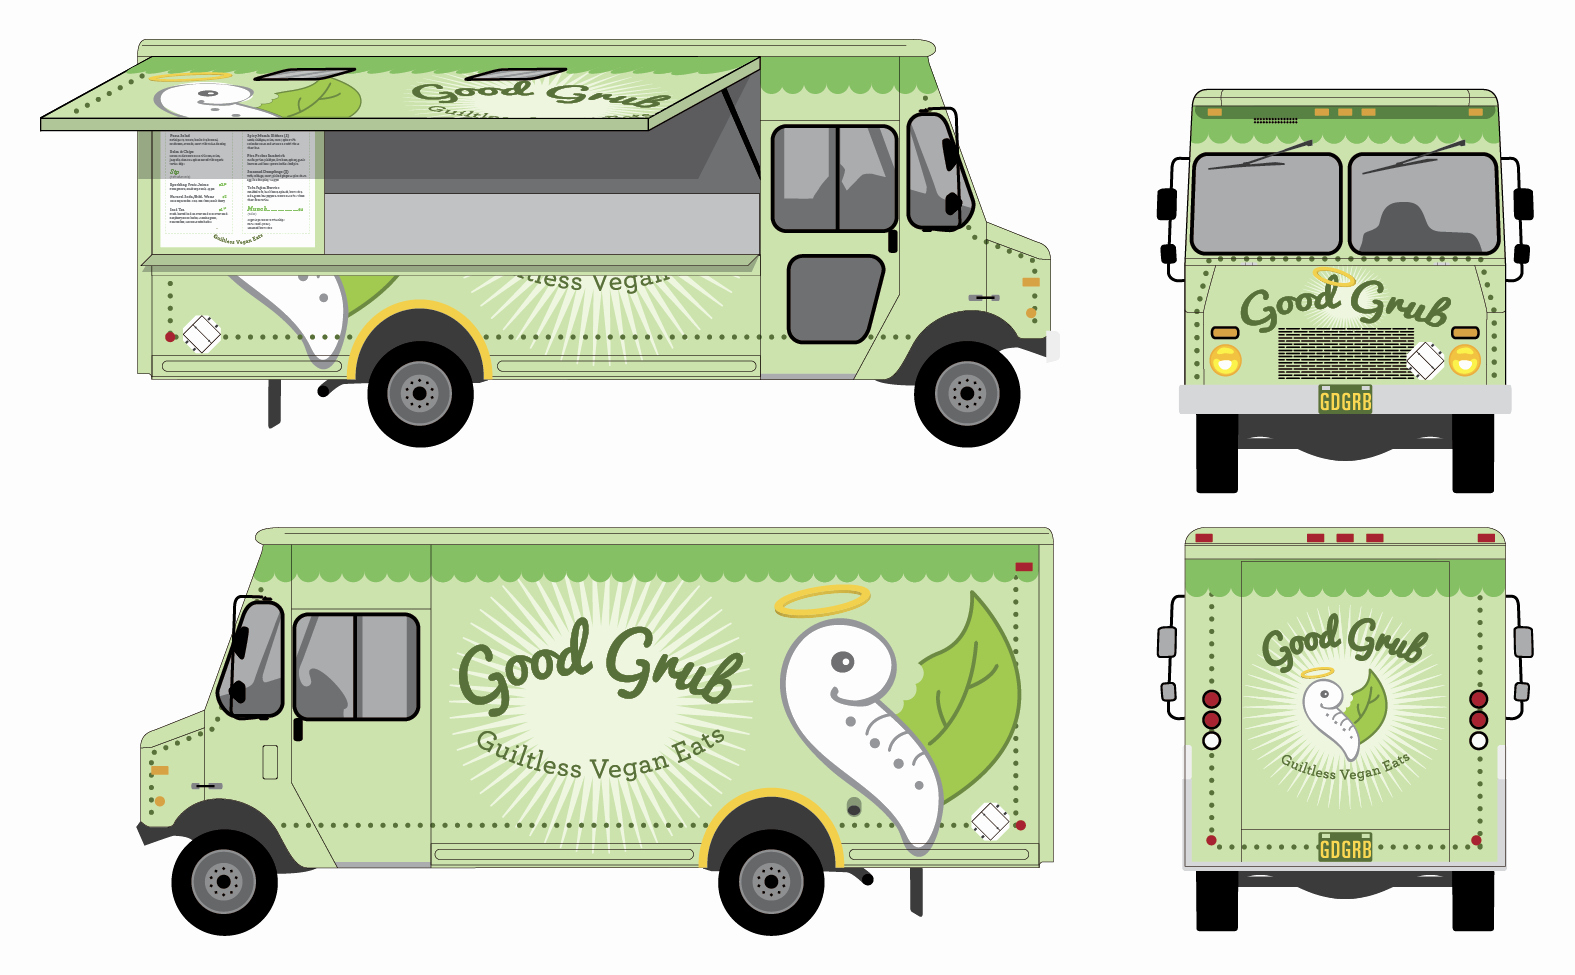 Food Truck Design Template Beautiful Christine Rivera Grd Blg Good Grub Food Truck Wrap